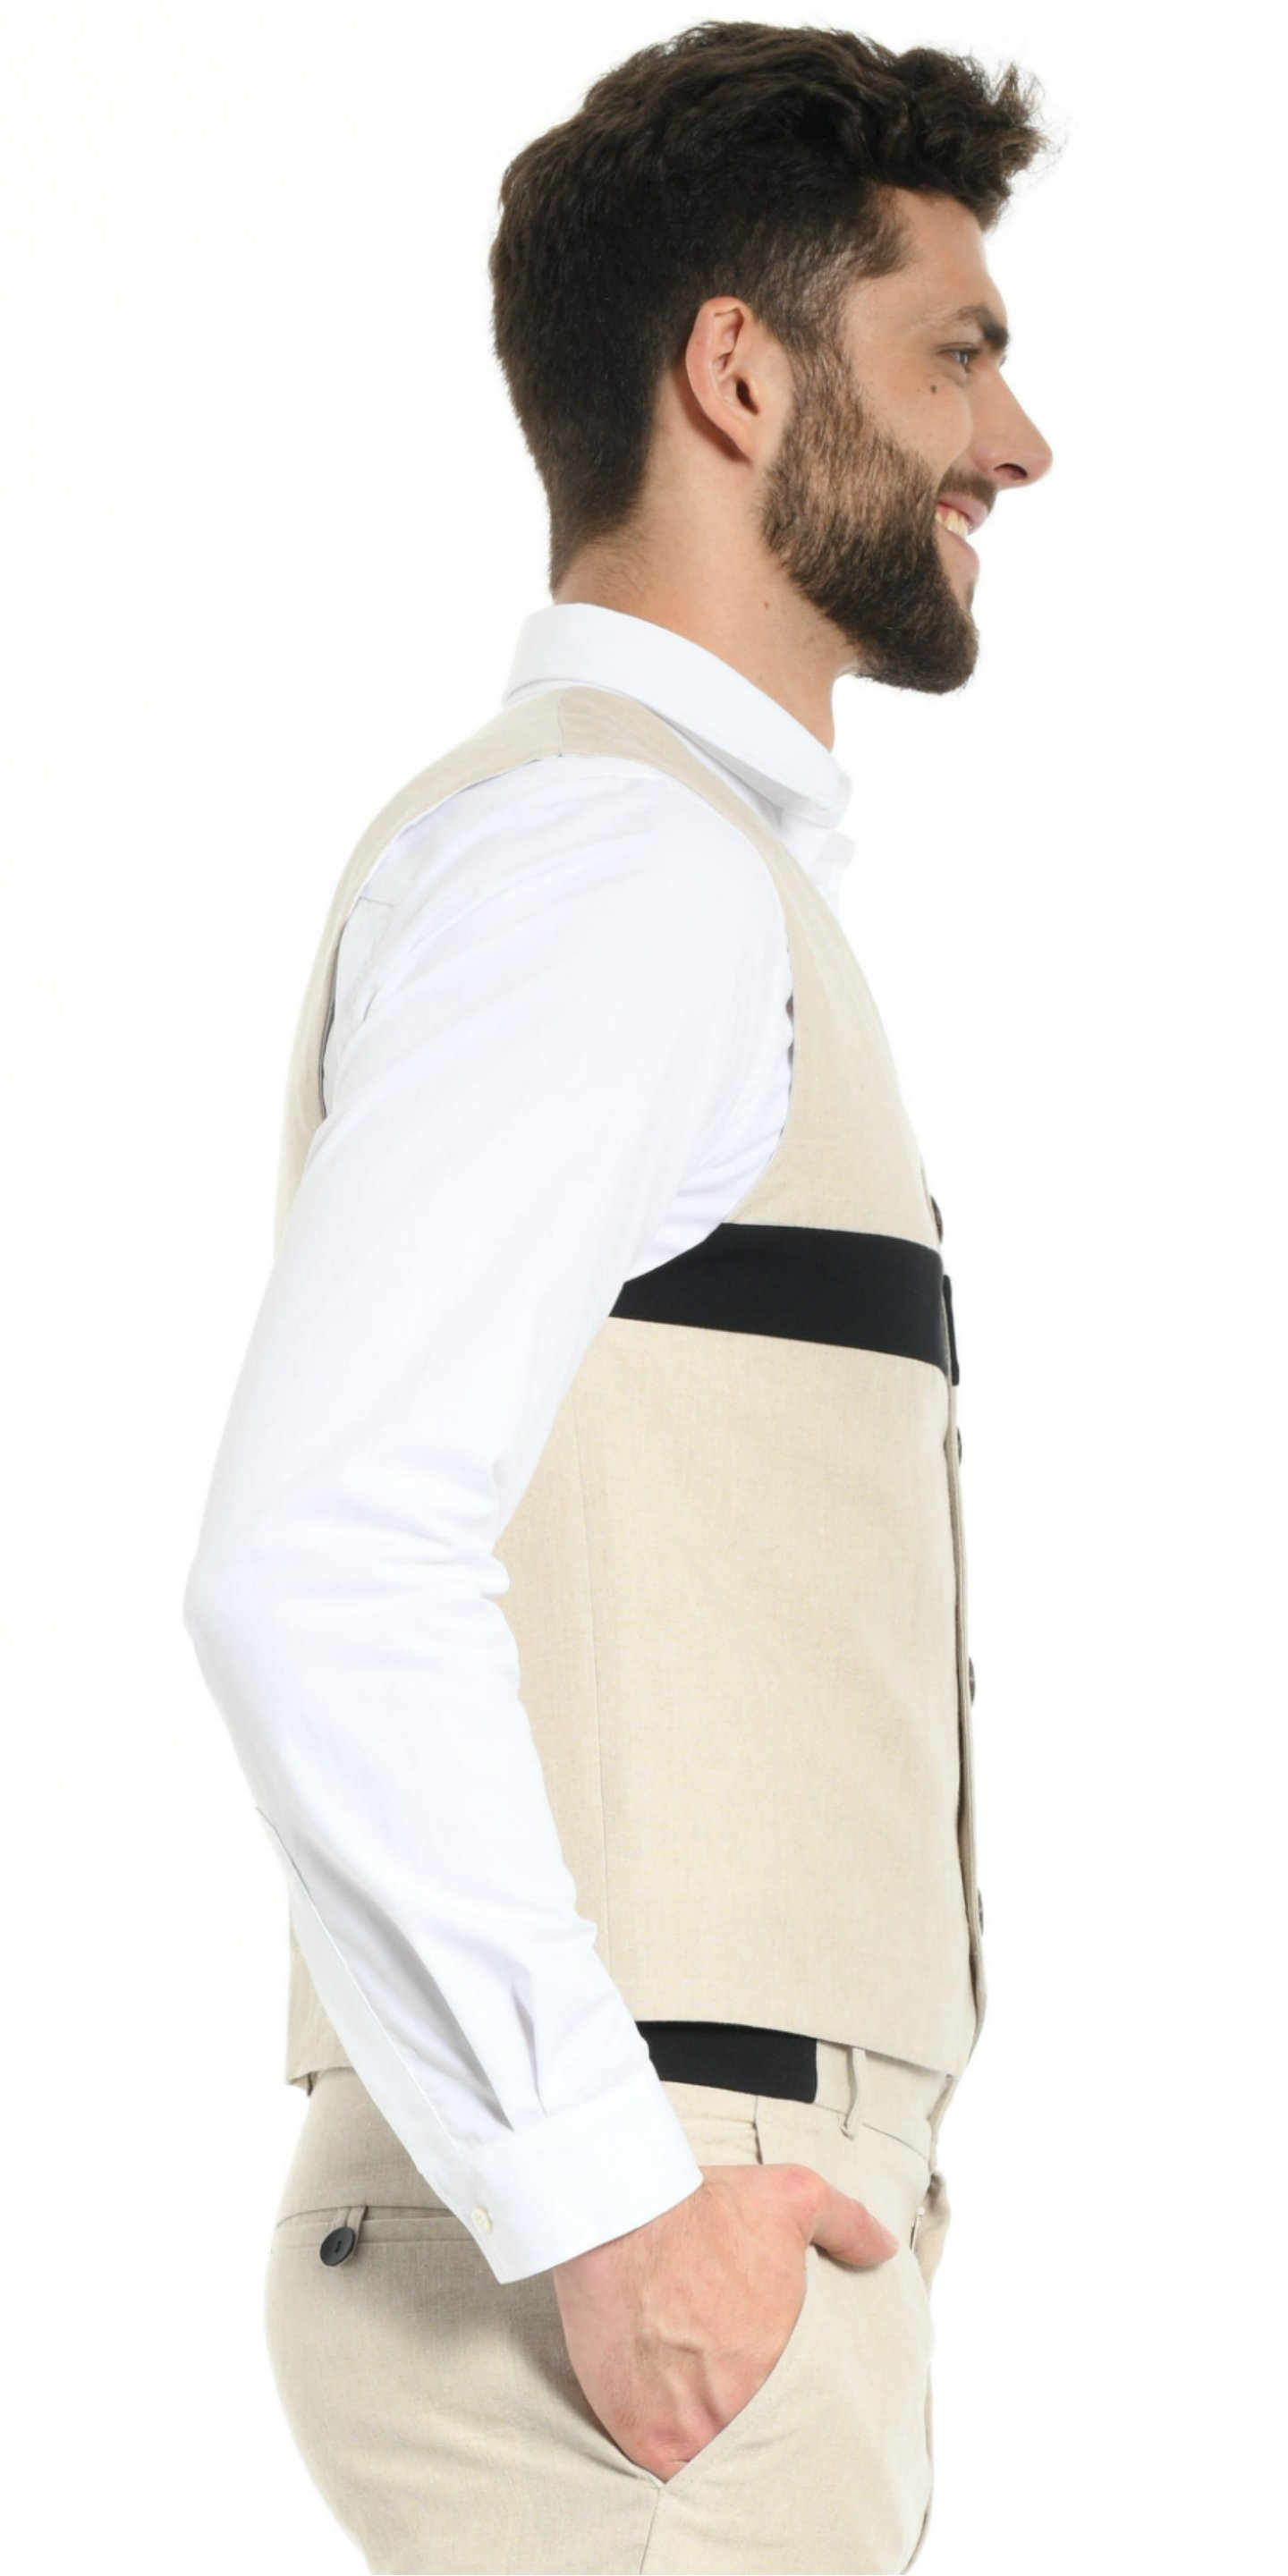 VEST BEIGE WITH BLACK STRIP from BEARD & FRINGE